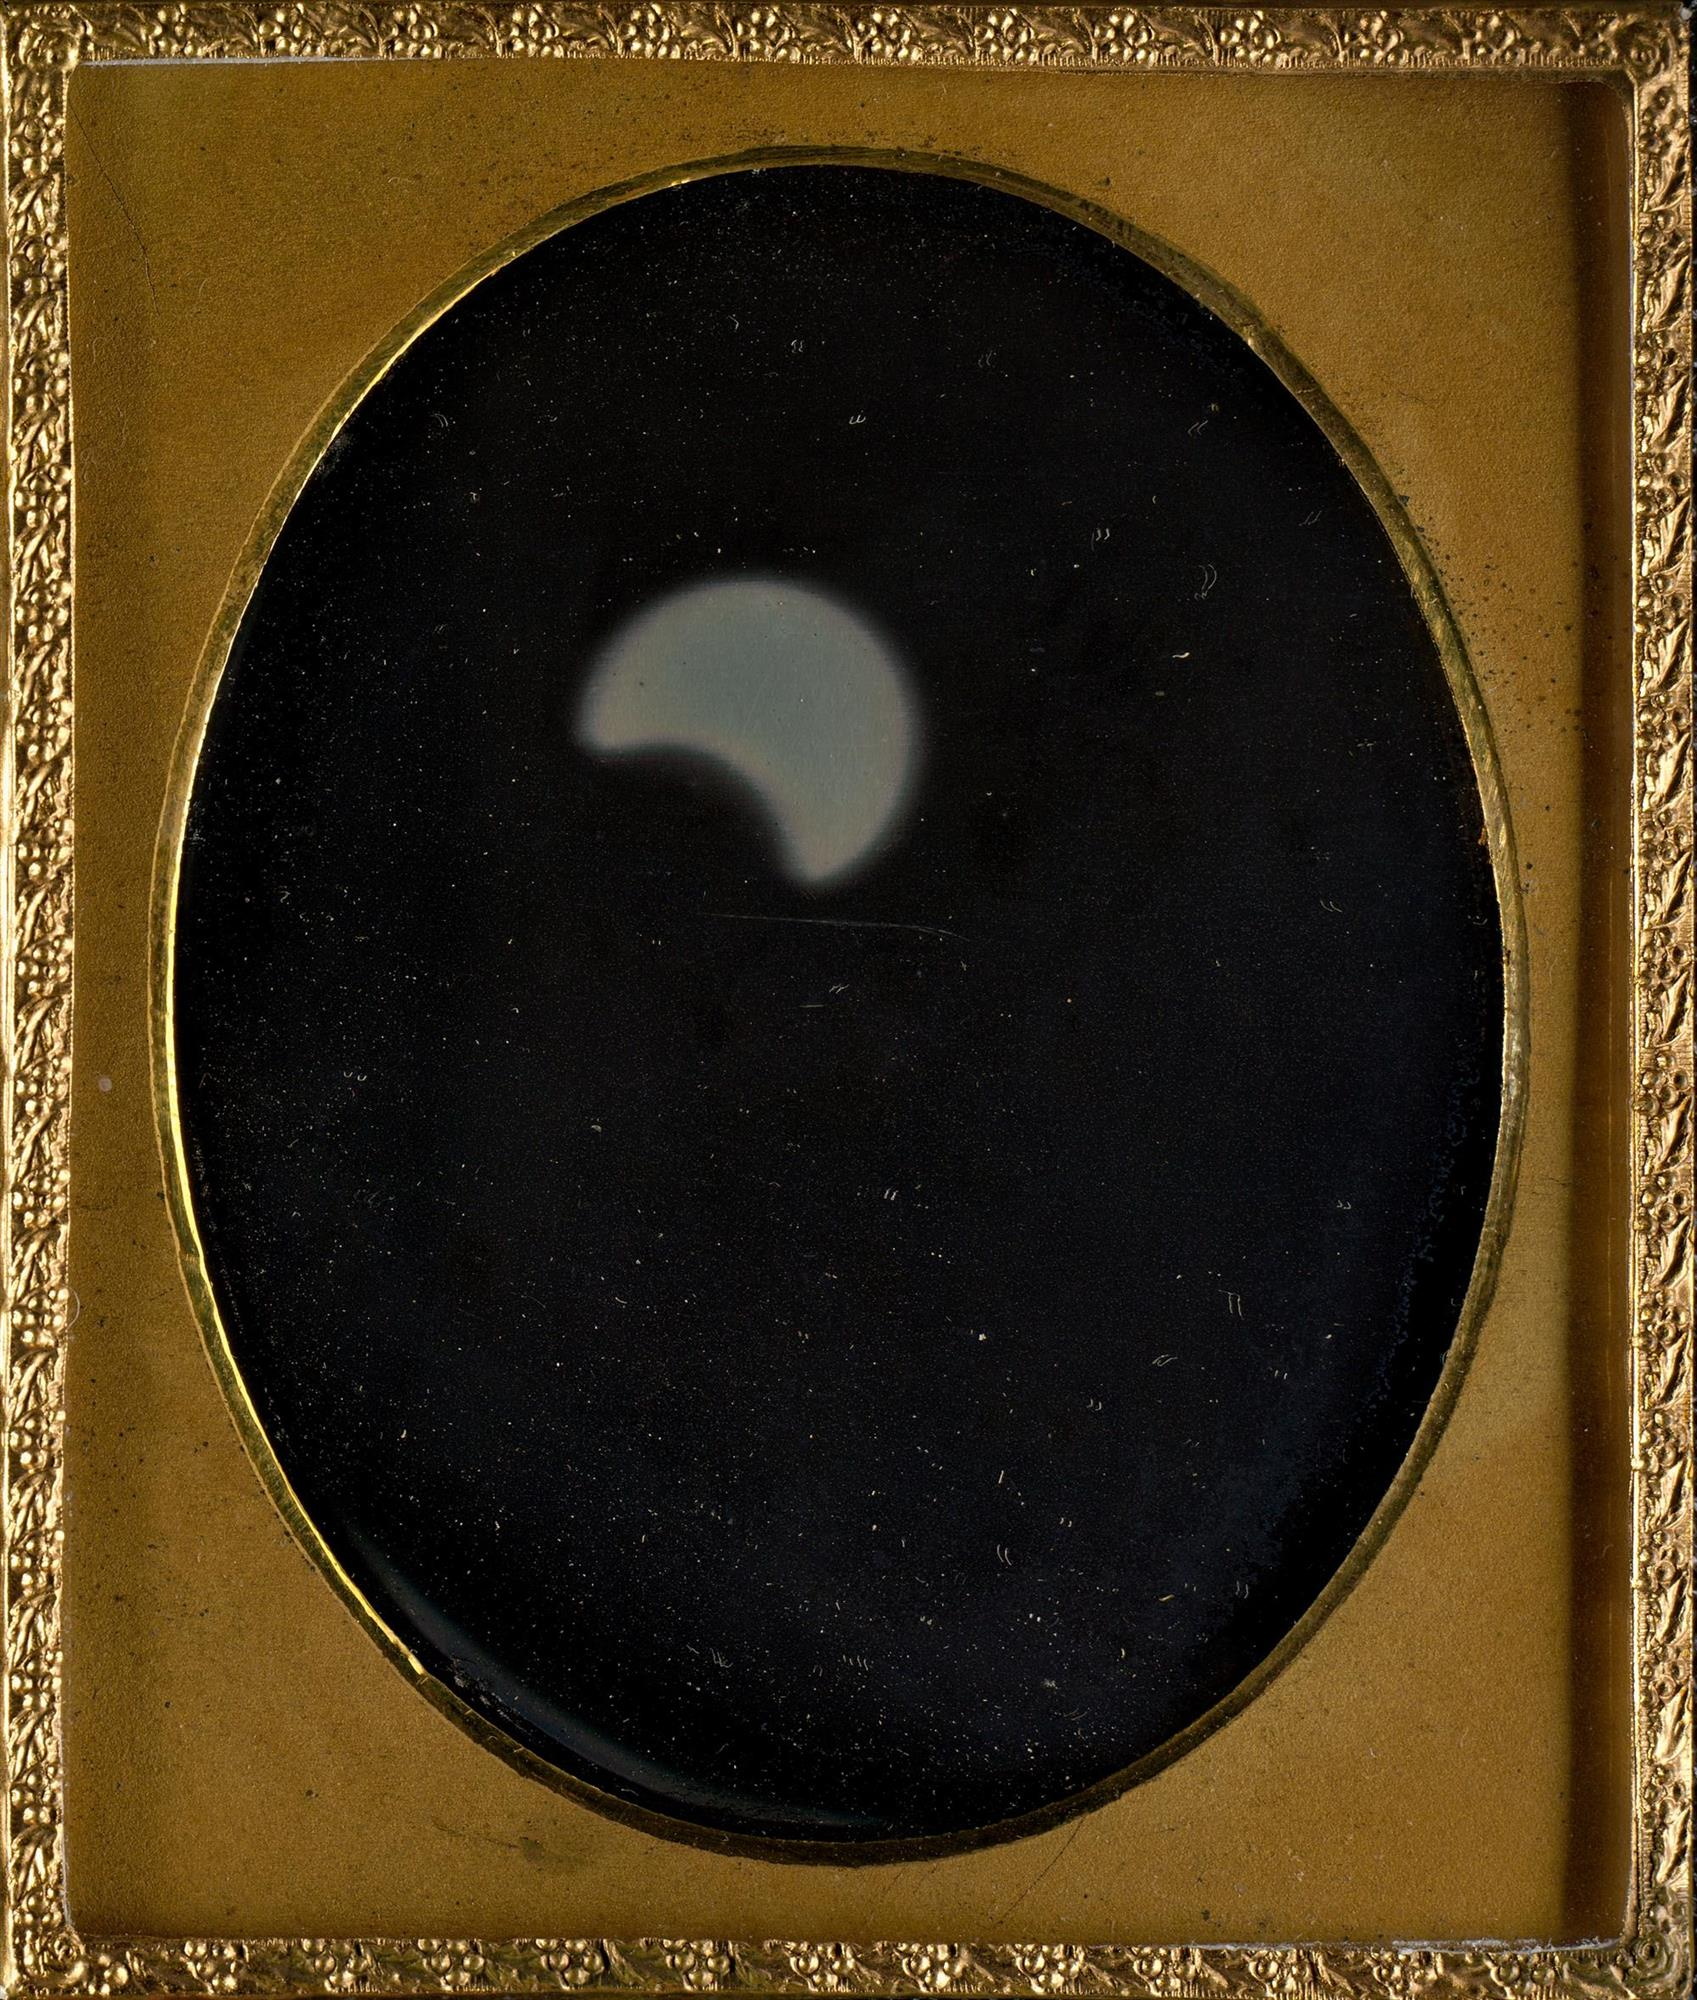 eclipsesolar1_6f44468a_1697x2000